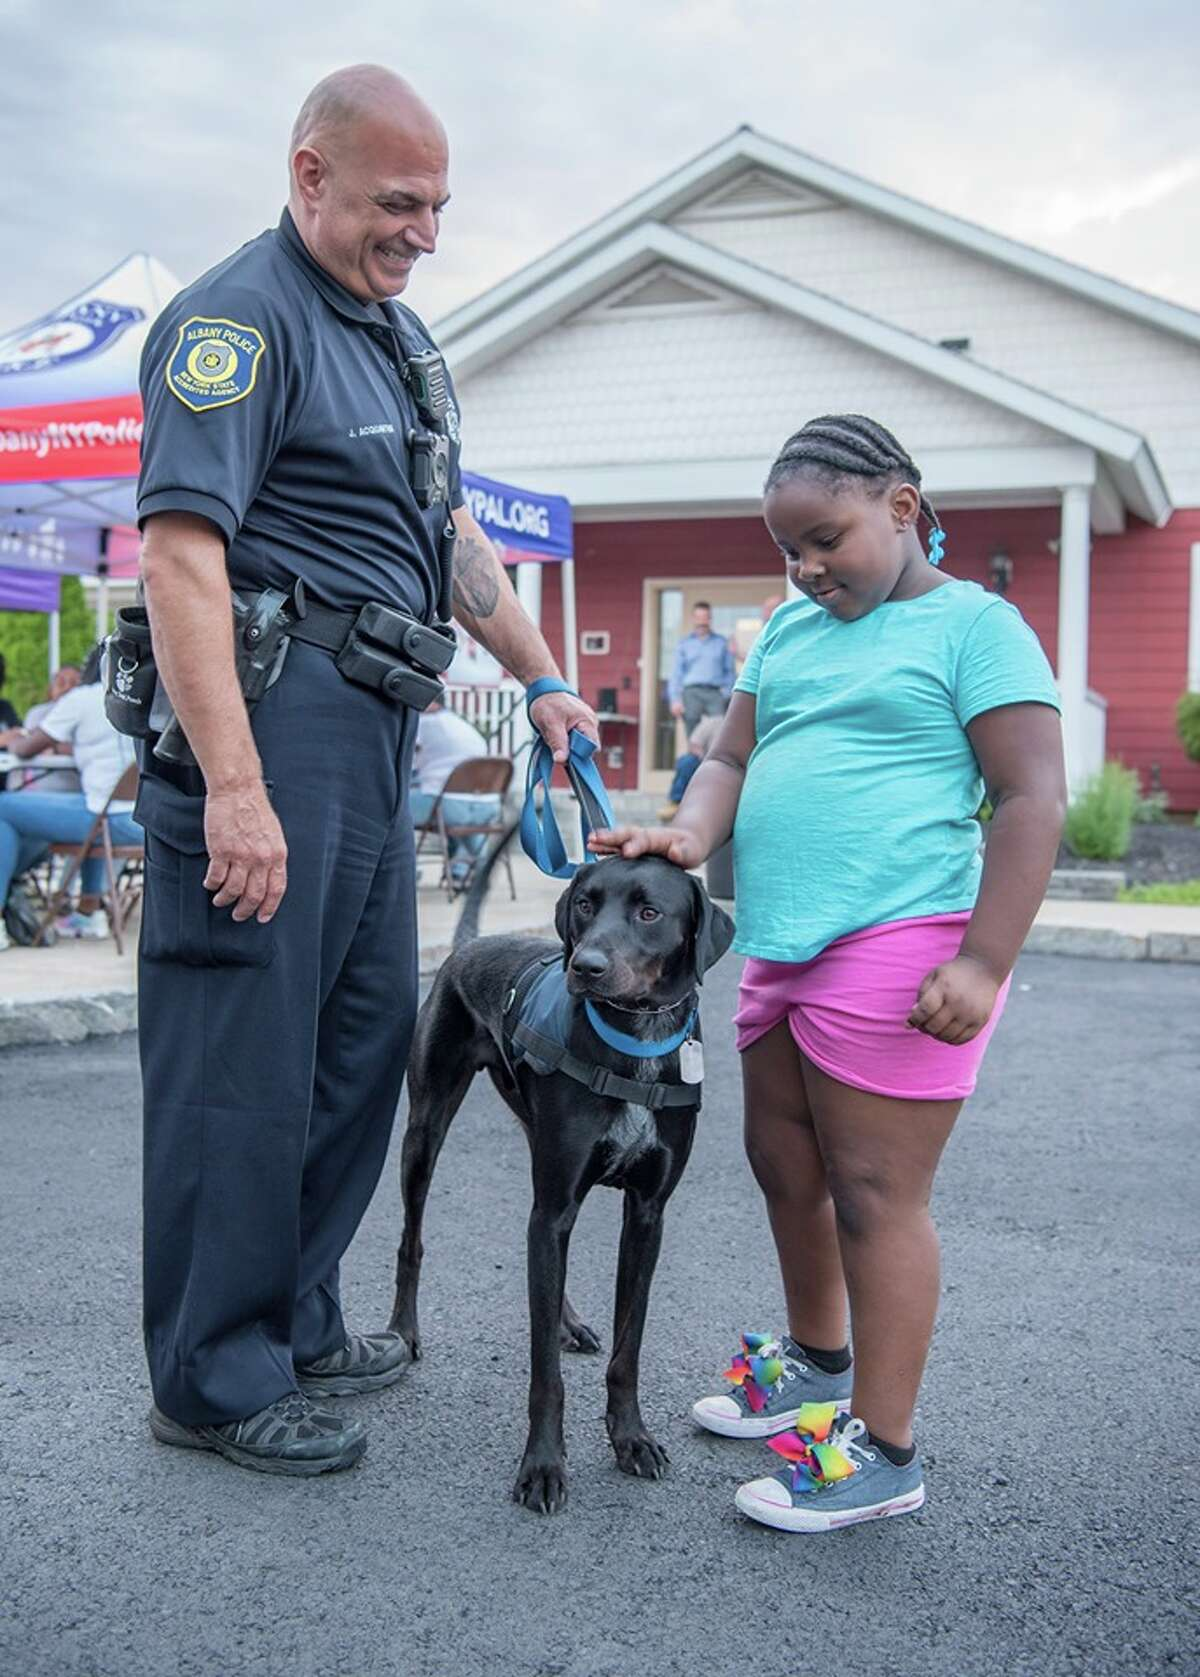 Albany police Officer Joseph Lynch and Albany police therapy dog Finn interact with a child in this undated photo.